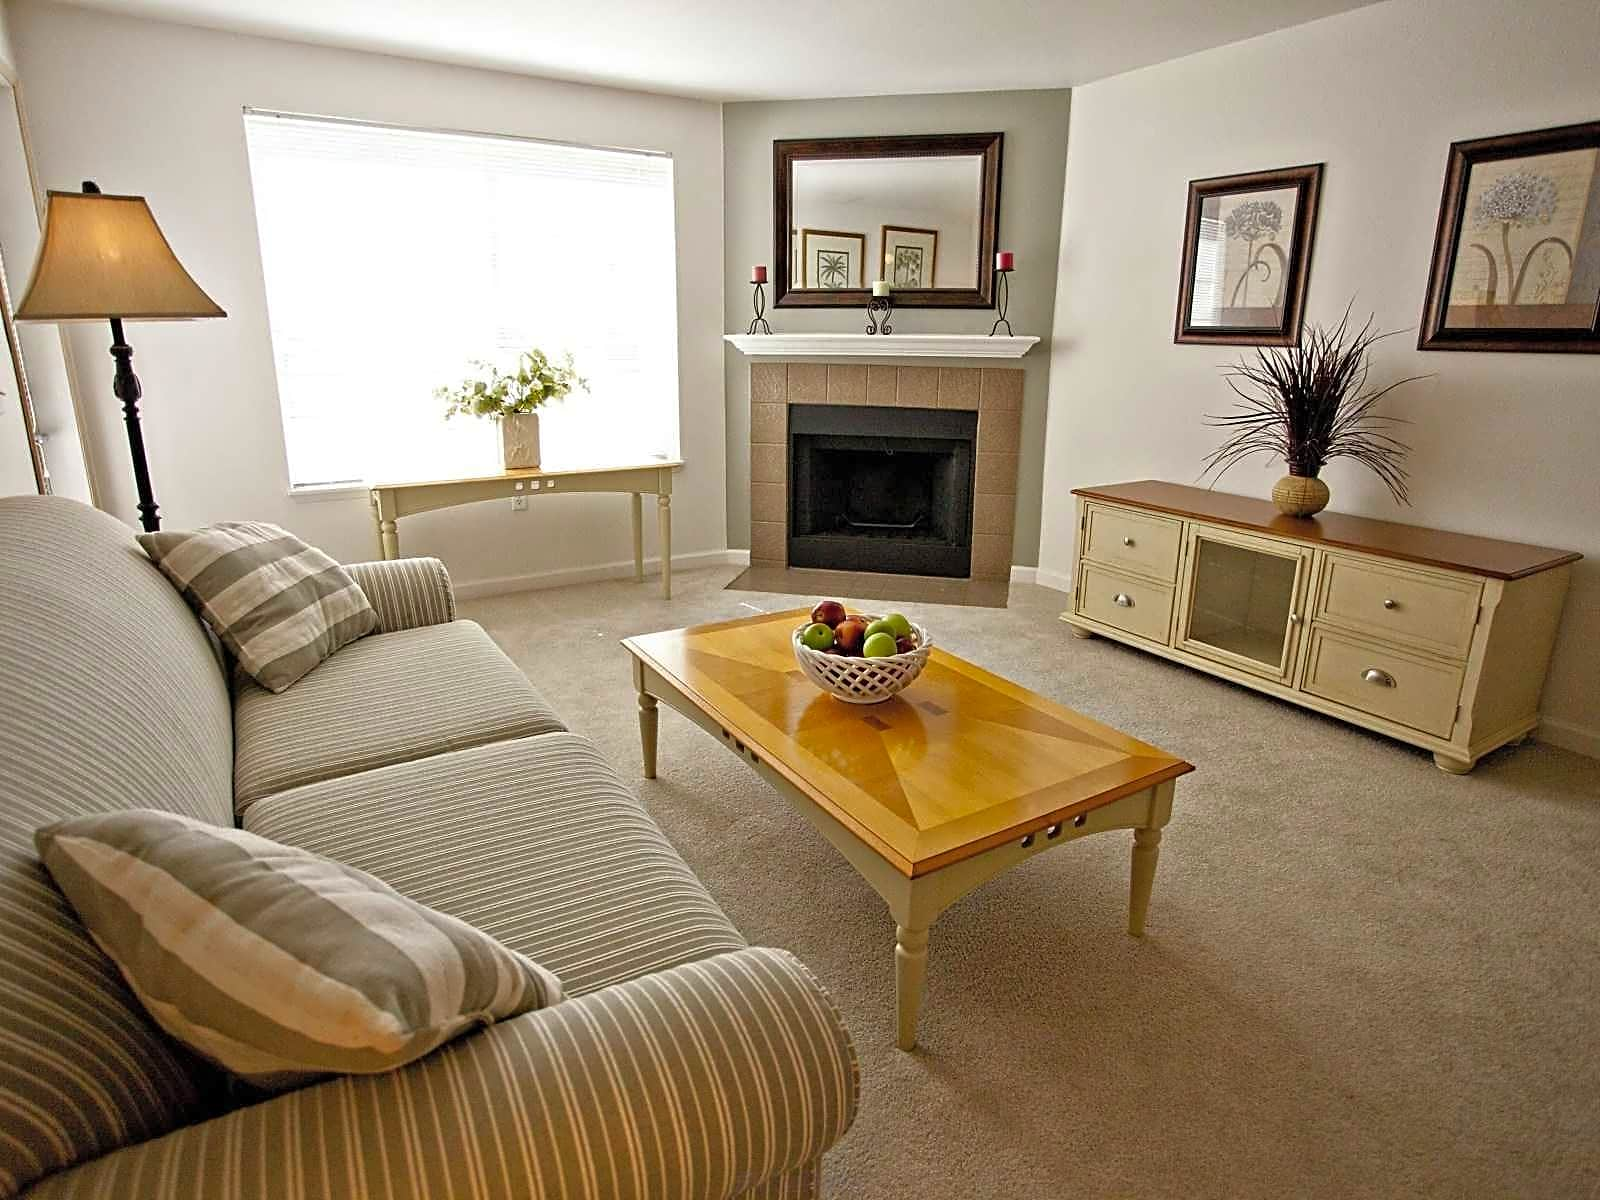 Pet friendly apartments in hillsboro or pet friendly - 1 bedroom apartments hillsboro oregon ...